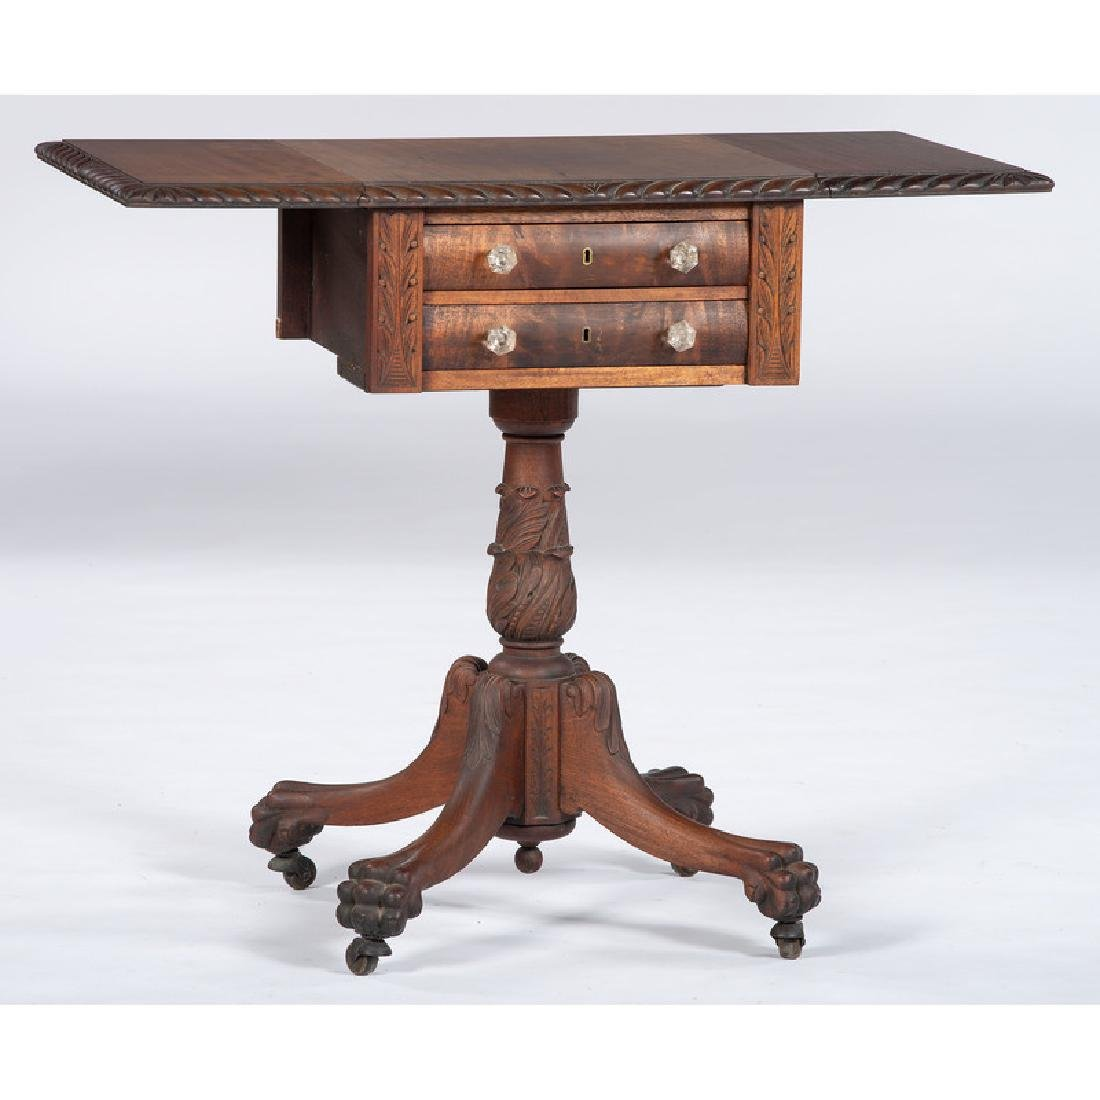 Classical Carved Mahogany Sewing Stand - 2